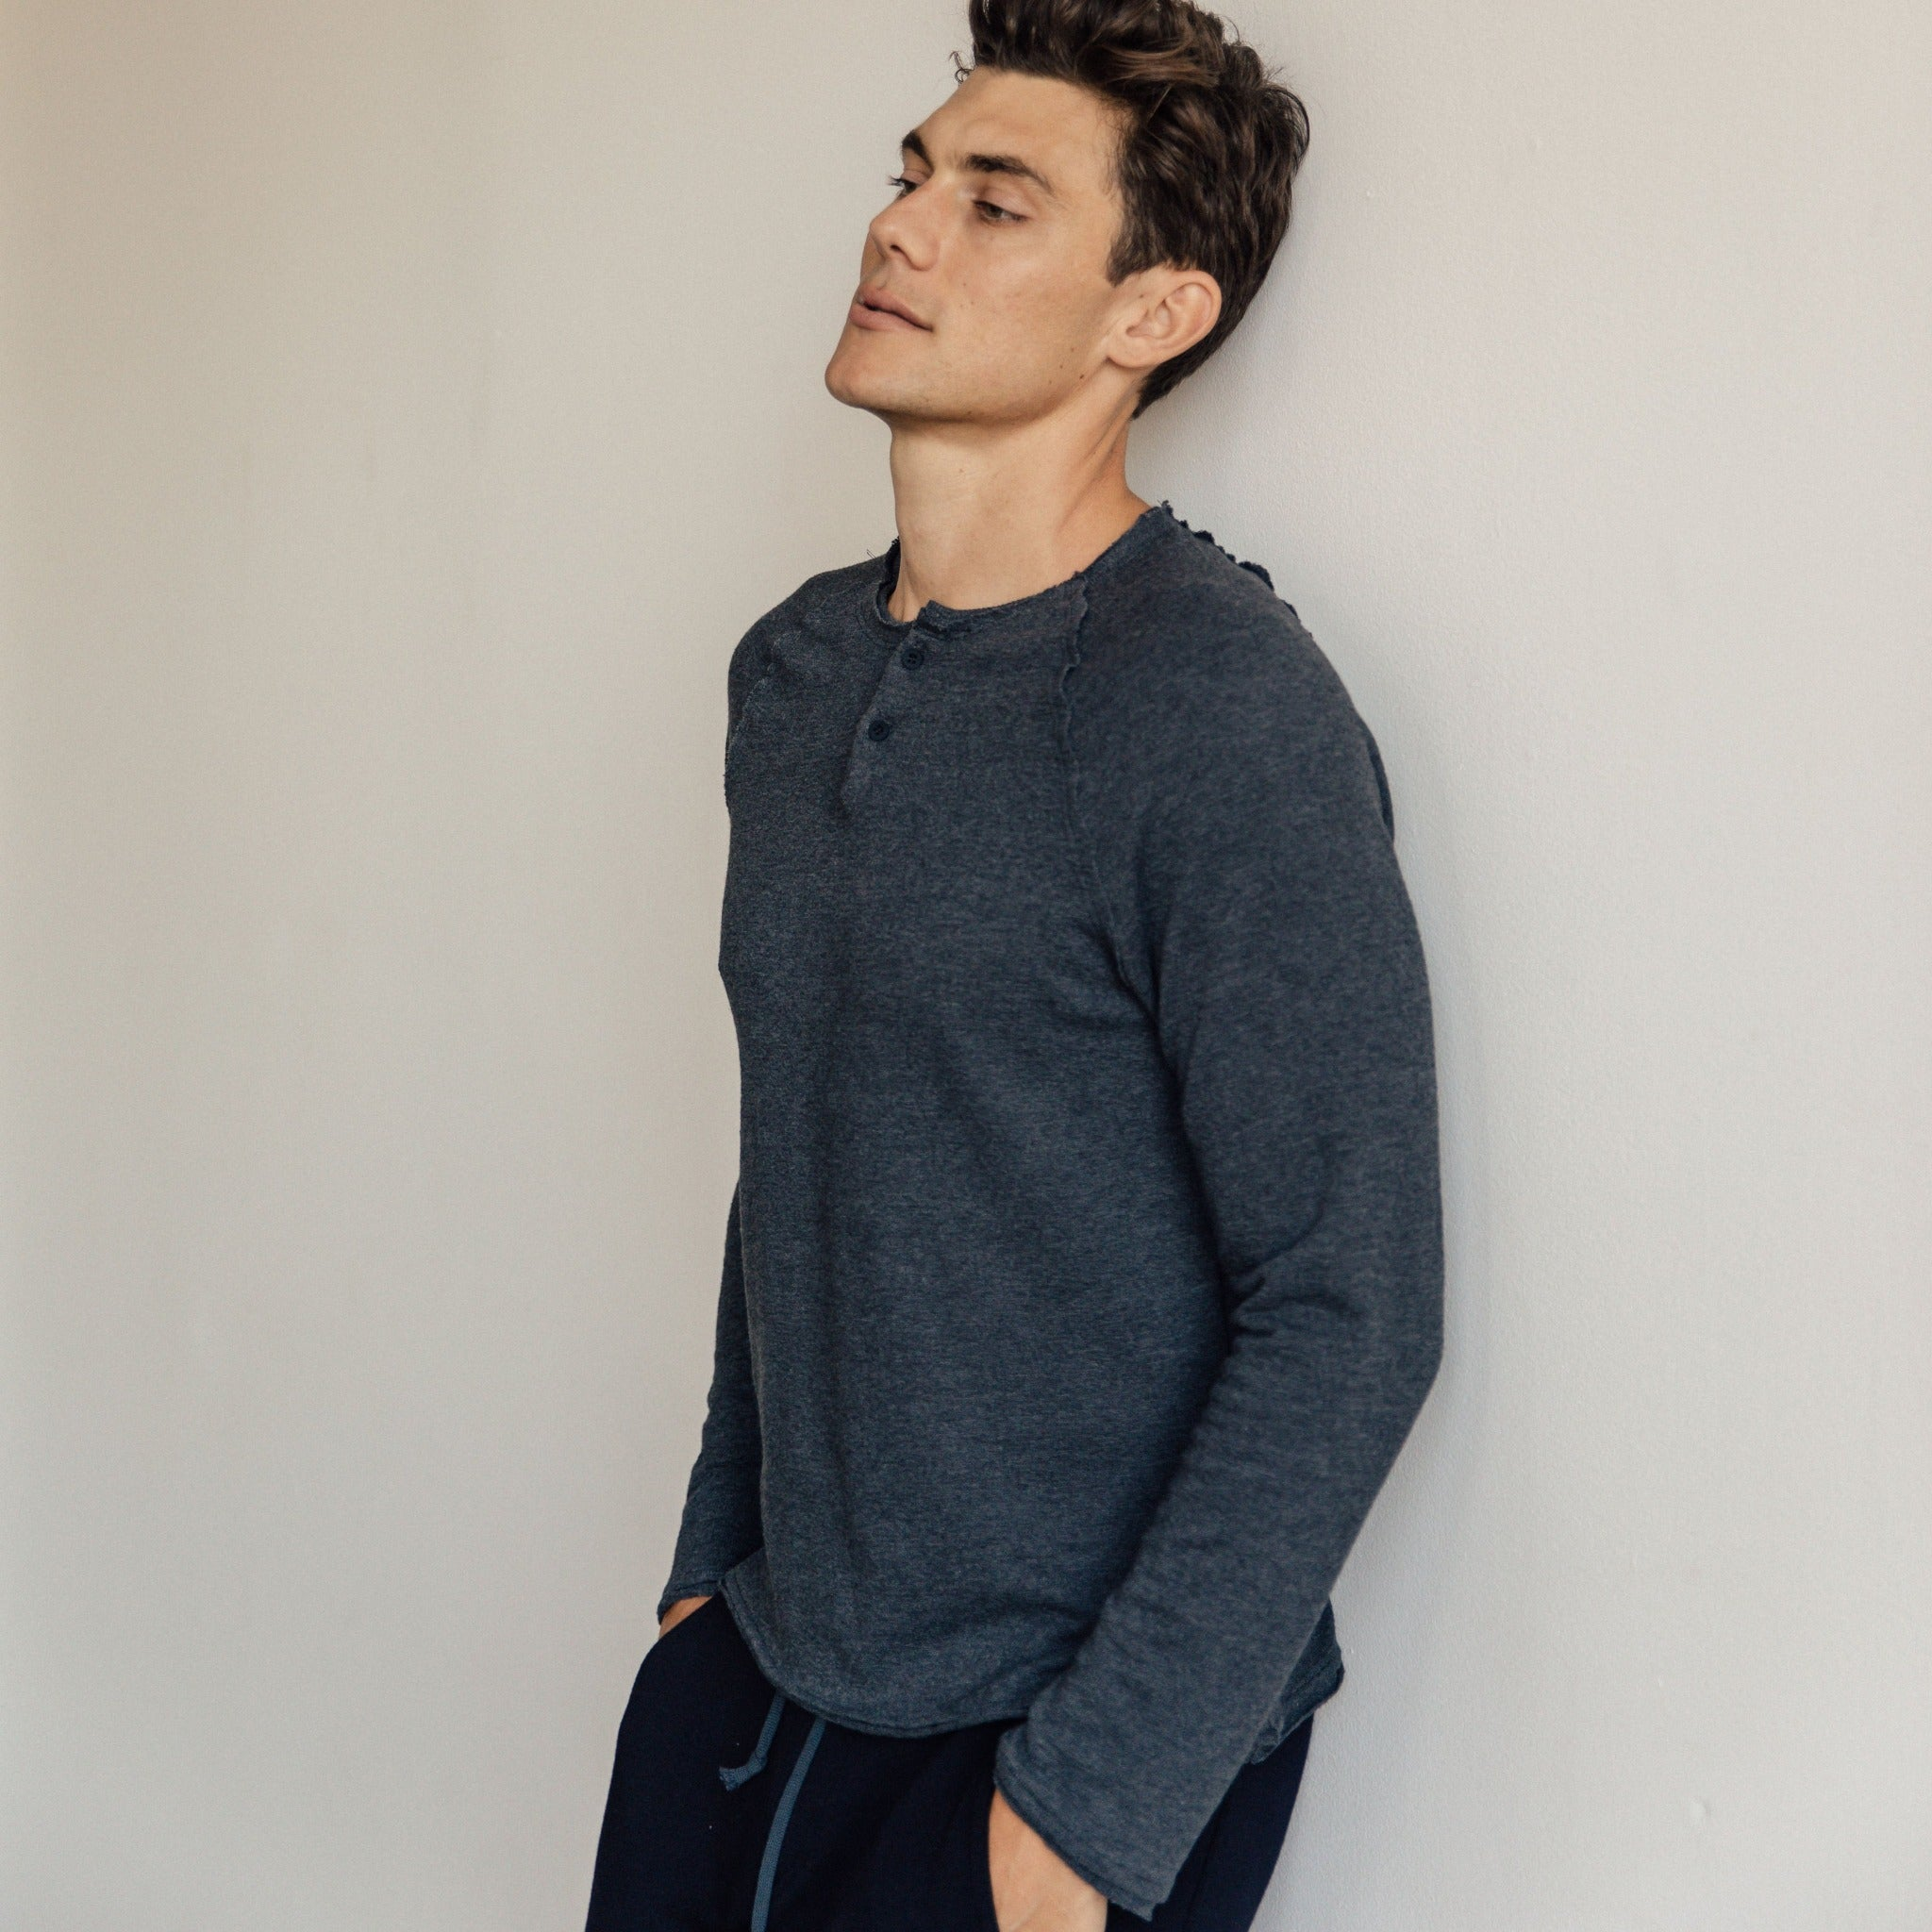 Jacquard Henley in Charcoal - Mitchell Evan